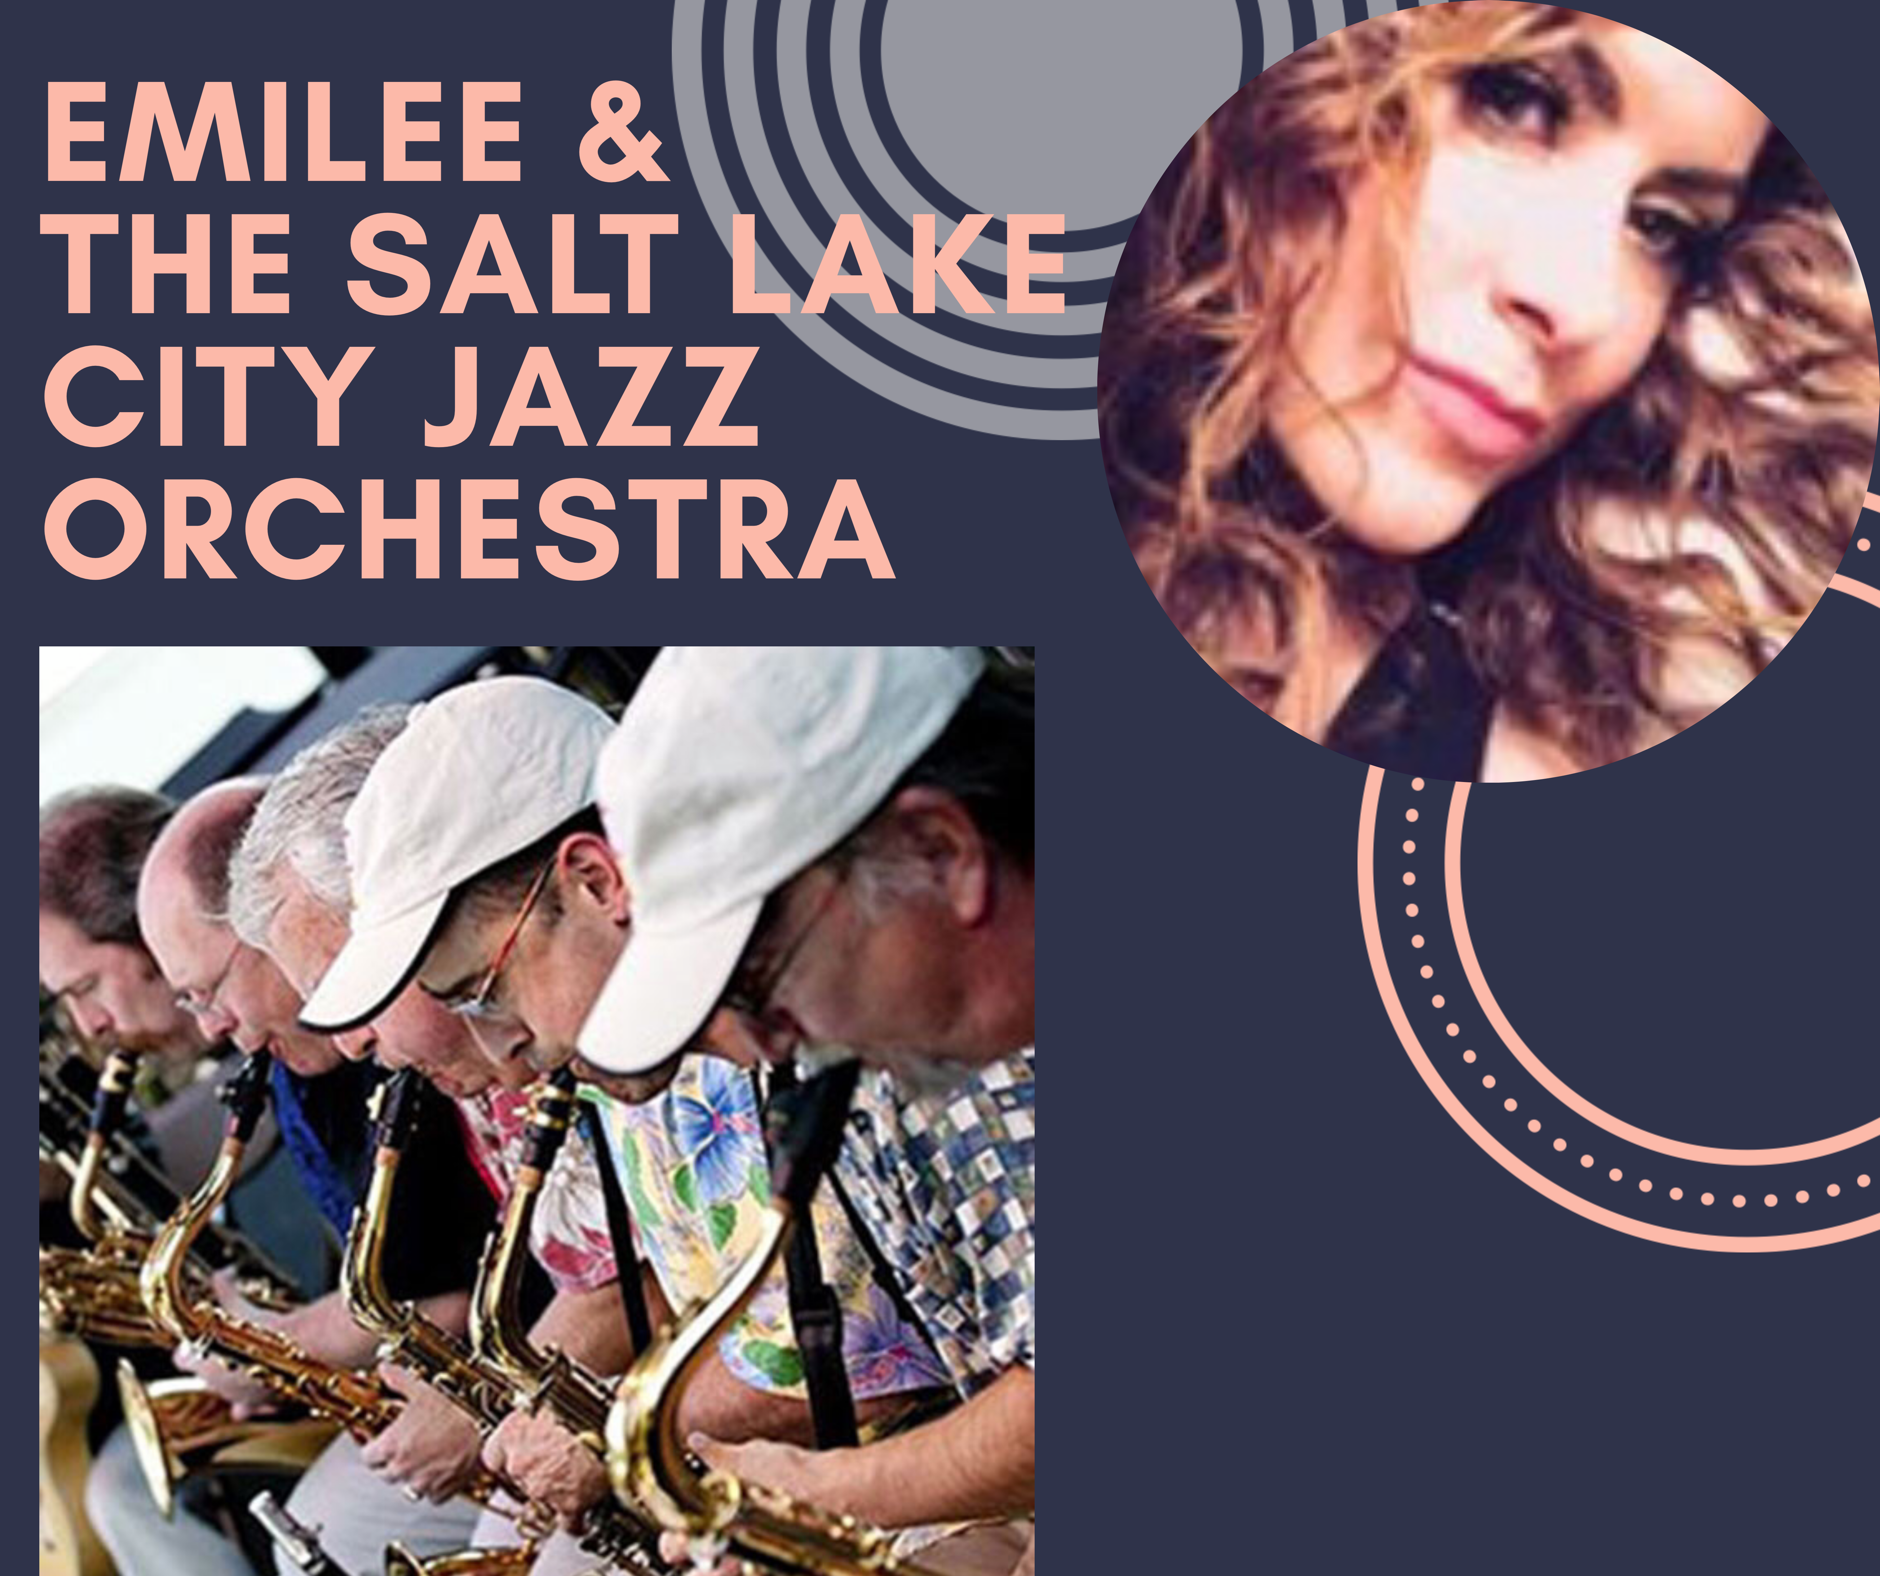 7:30PM - EMILEE & THE SALT LAKE CITY JAZZ ORCHESTRA